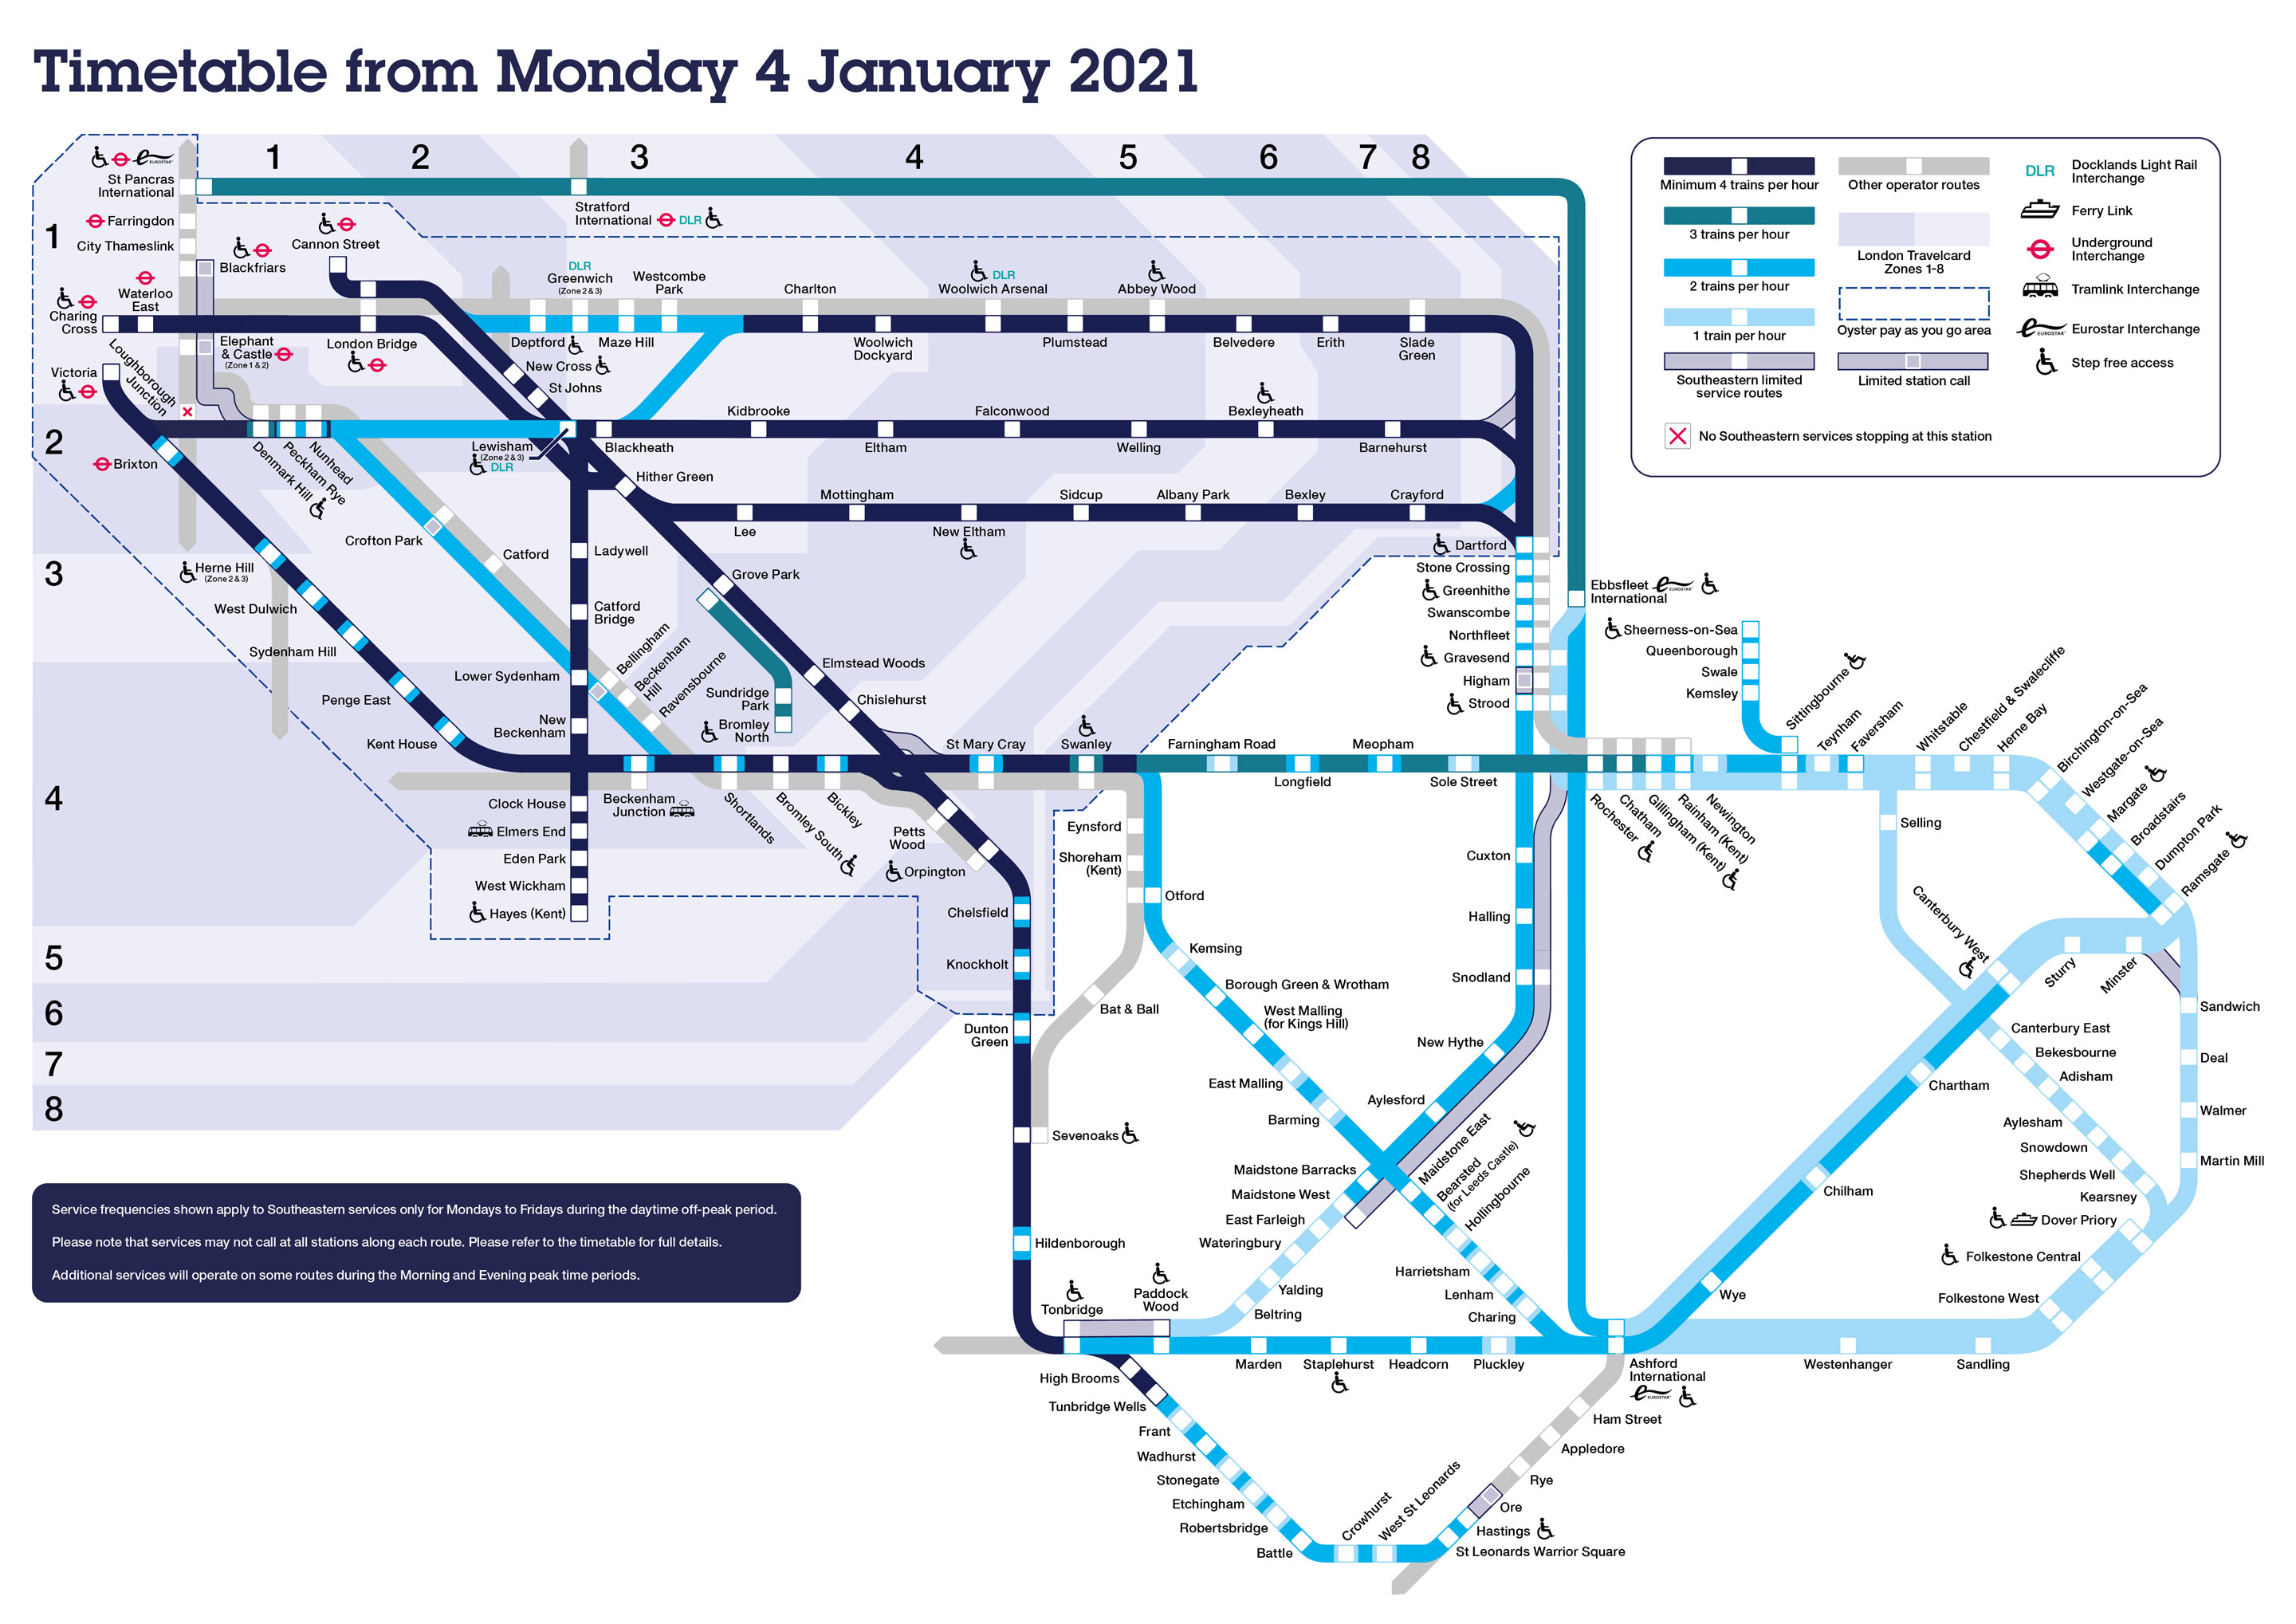 Southeastern timetable map from 4 January 2021